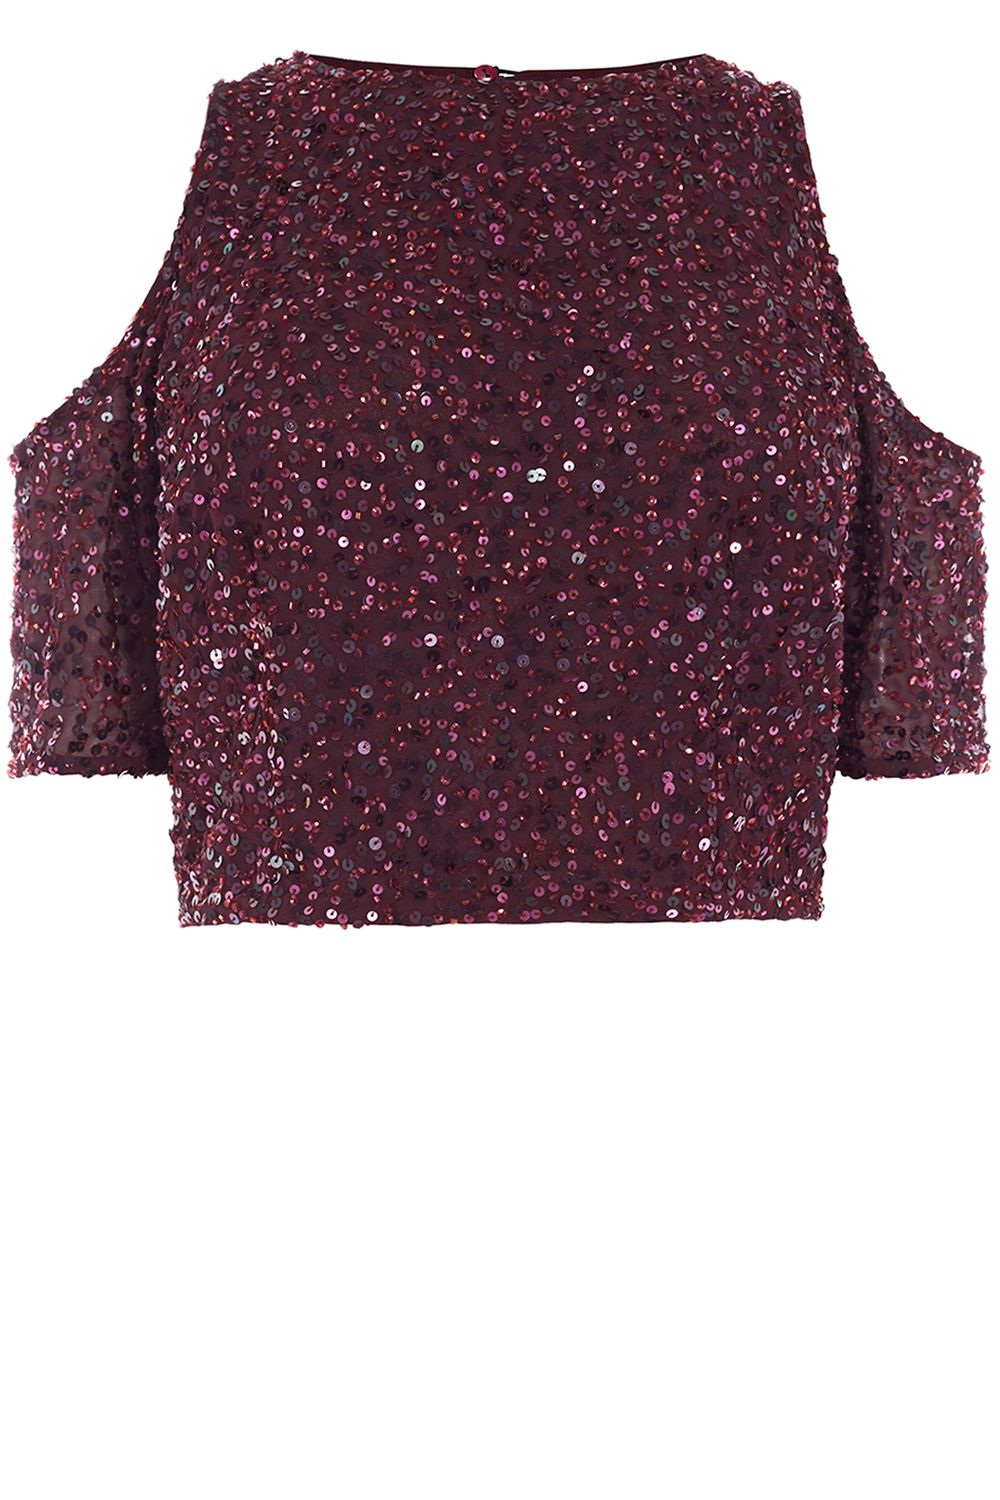 Coast Saya Cold Shoulder Sequin Top, Merlot